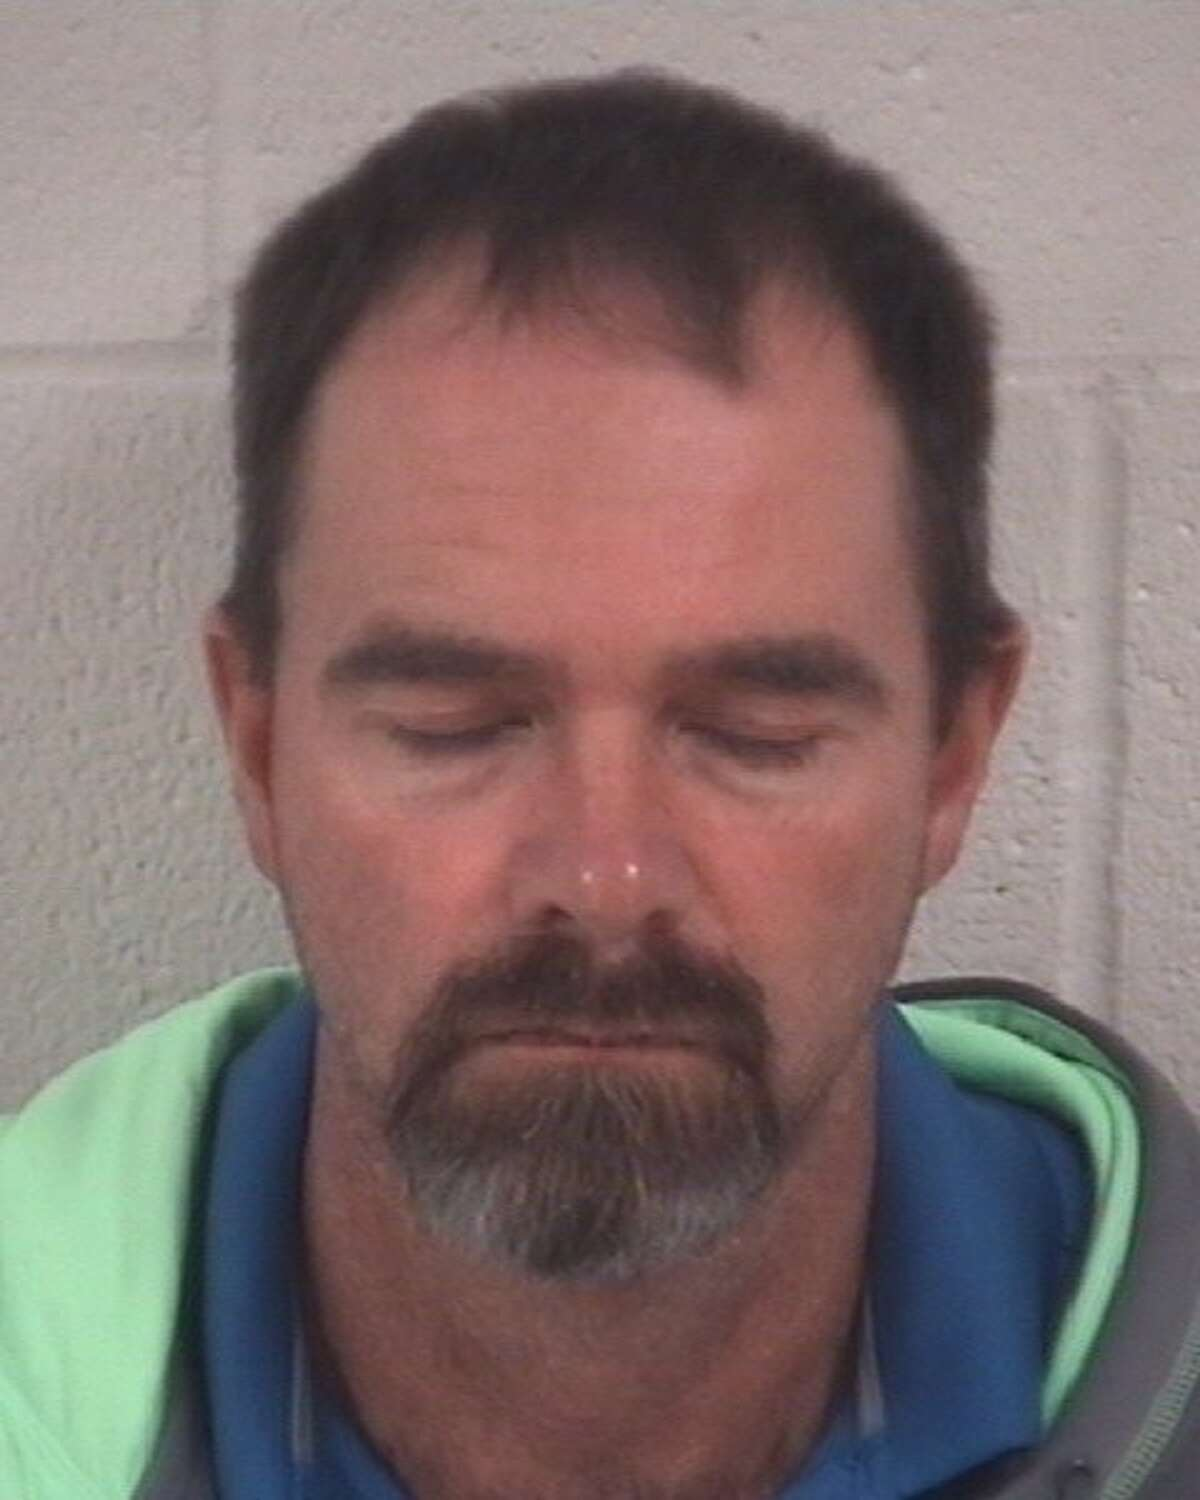 Robert Brian Reagan, 41, was arrested on June 17, 2015, and charged with online solicitation of a minor.